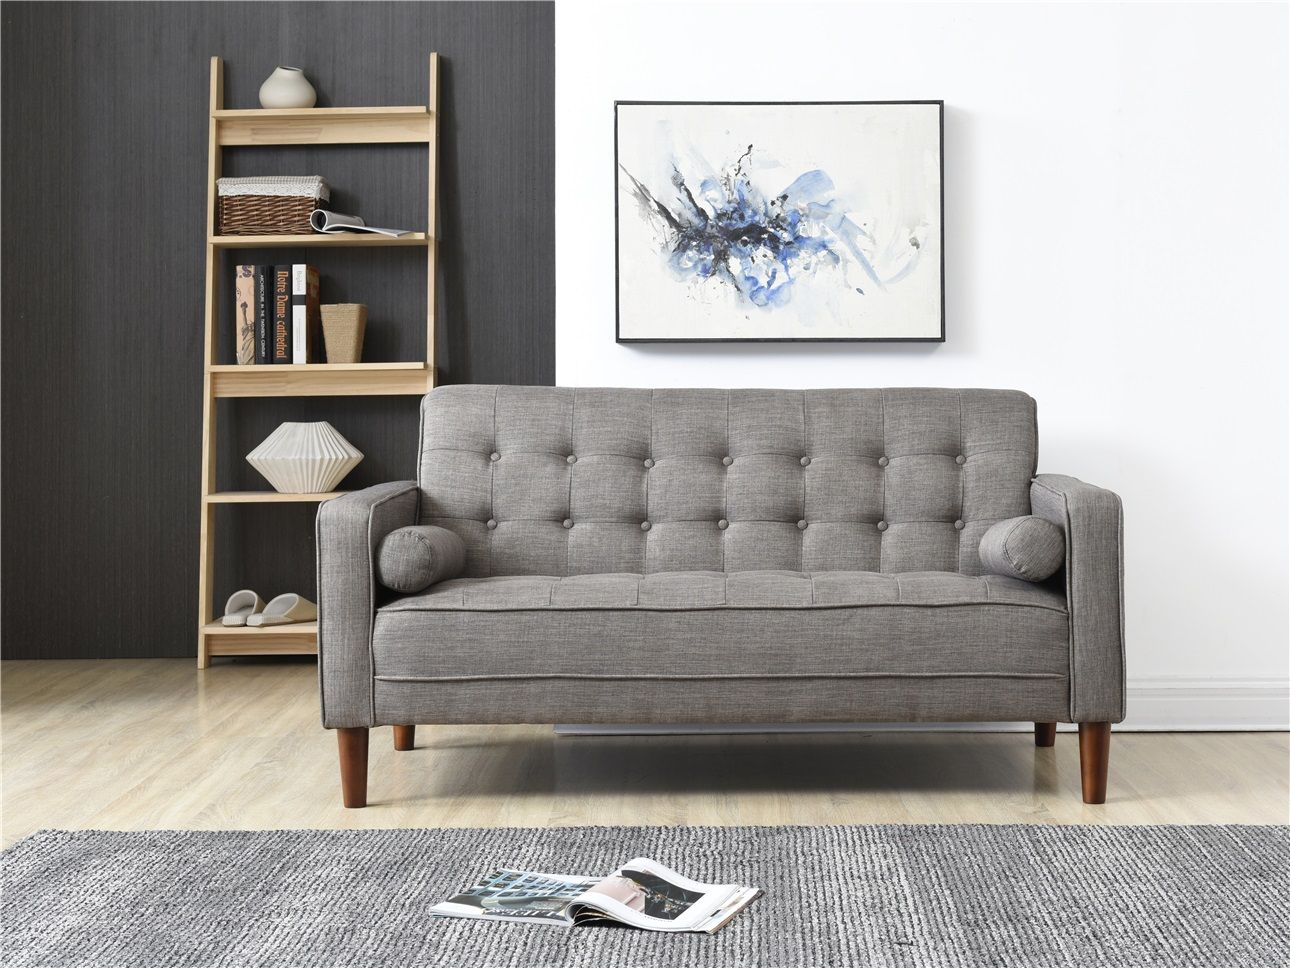 a3591bf209270c22c2c95186b7a4391c - Better Homes And Gardens Porter Futon Assembly Instructions